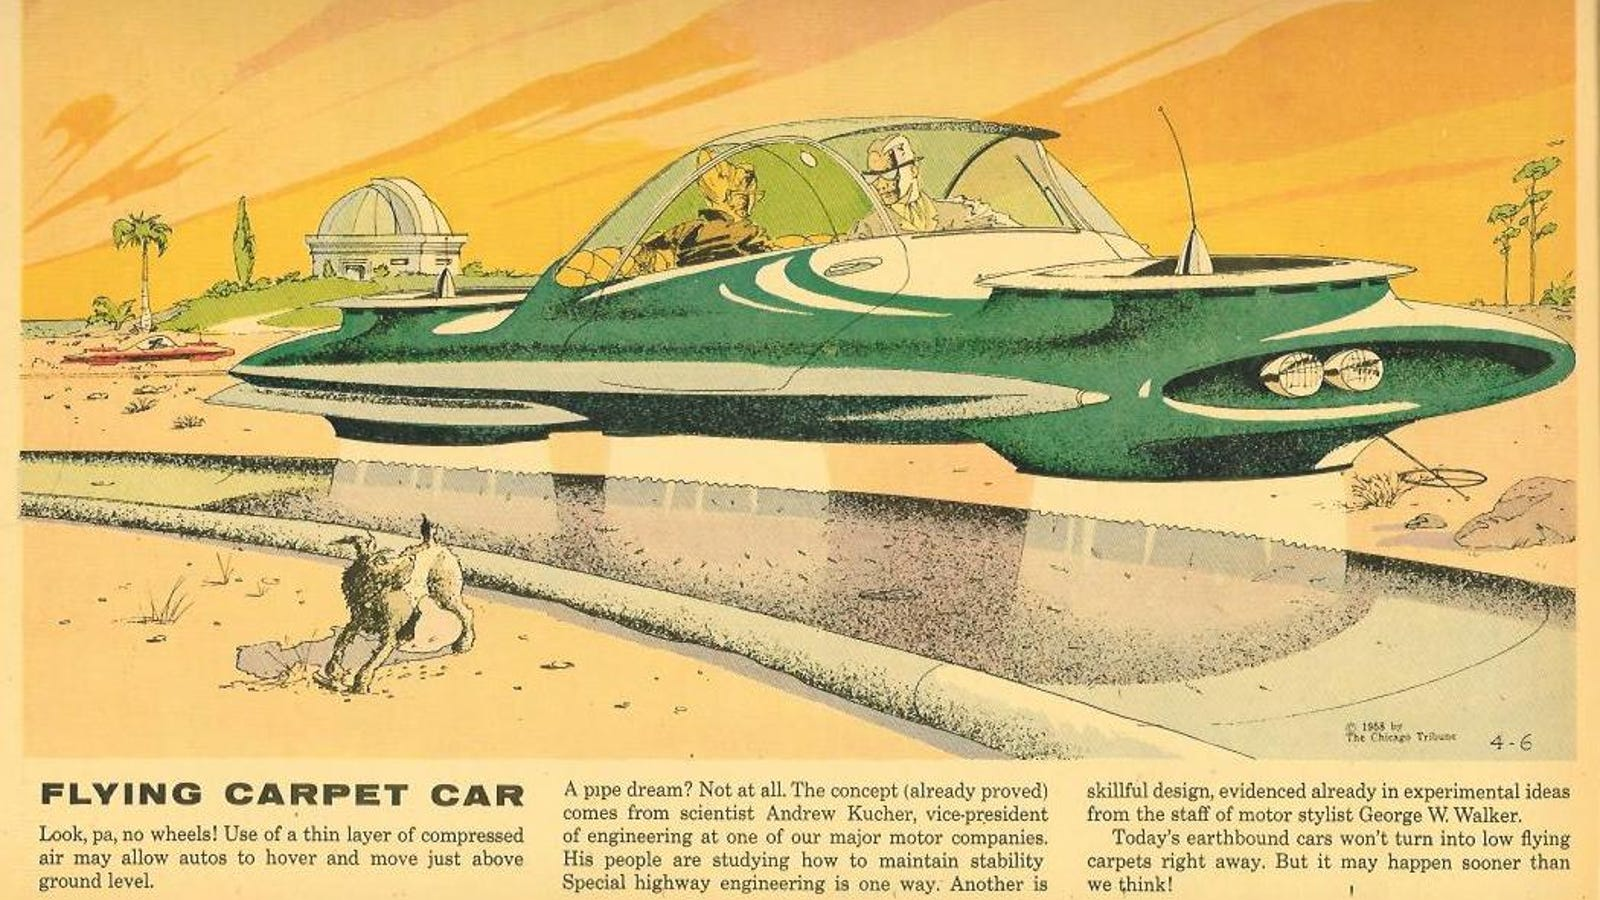 In the 1950s, Ford Motor's vice-president pushed for a